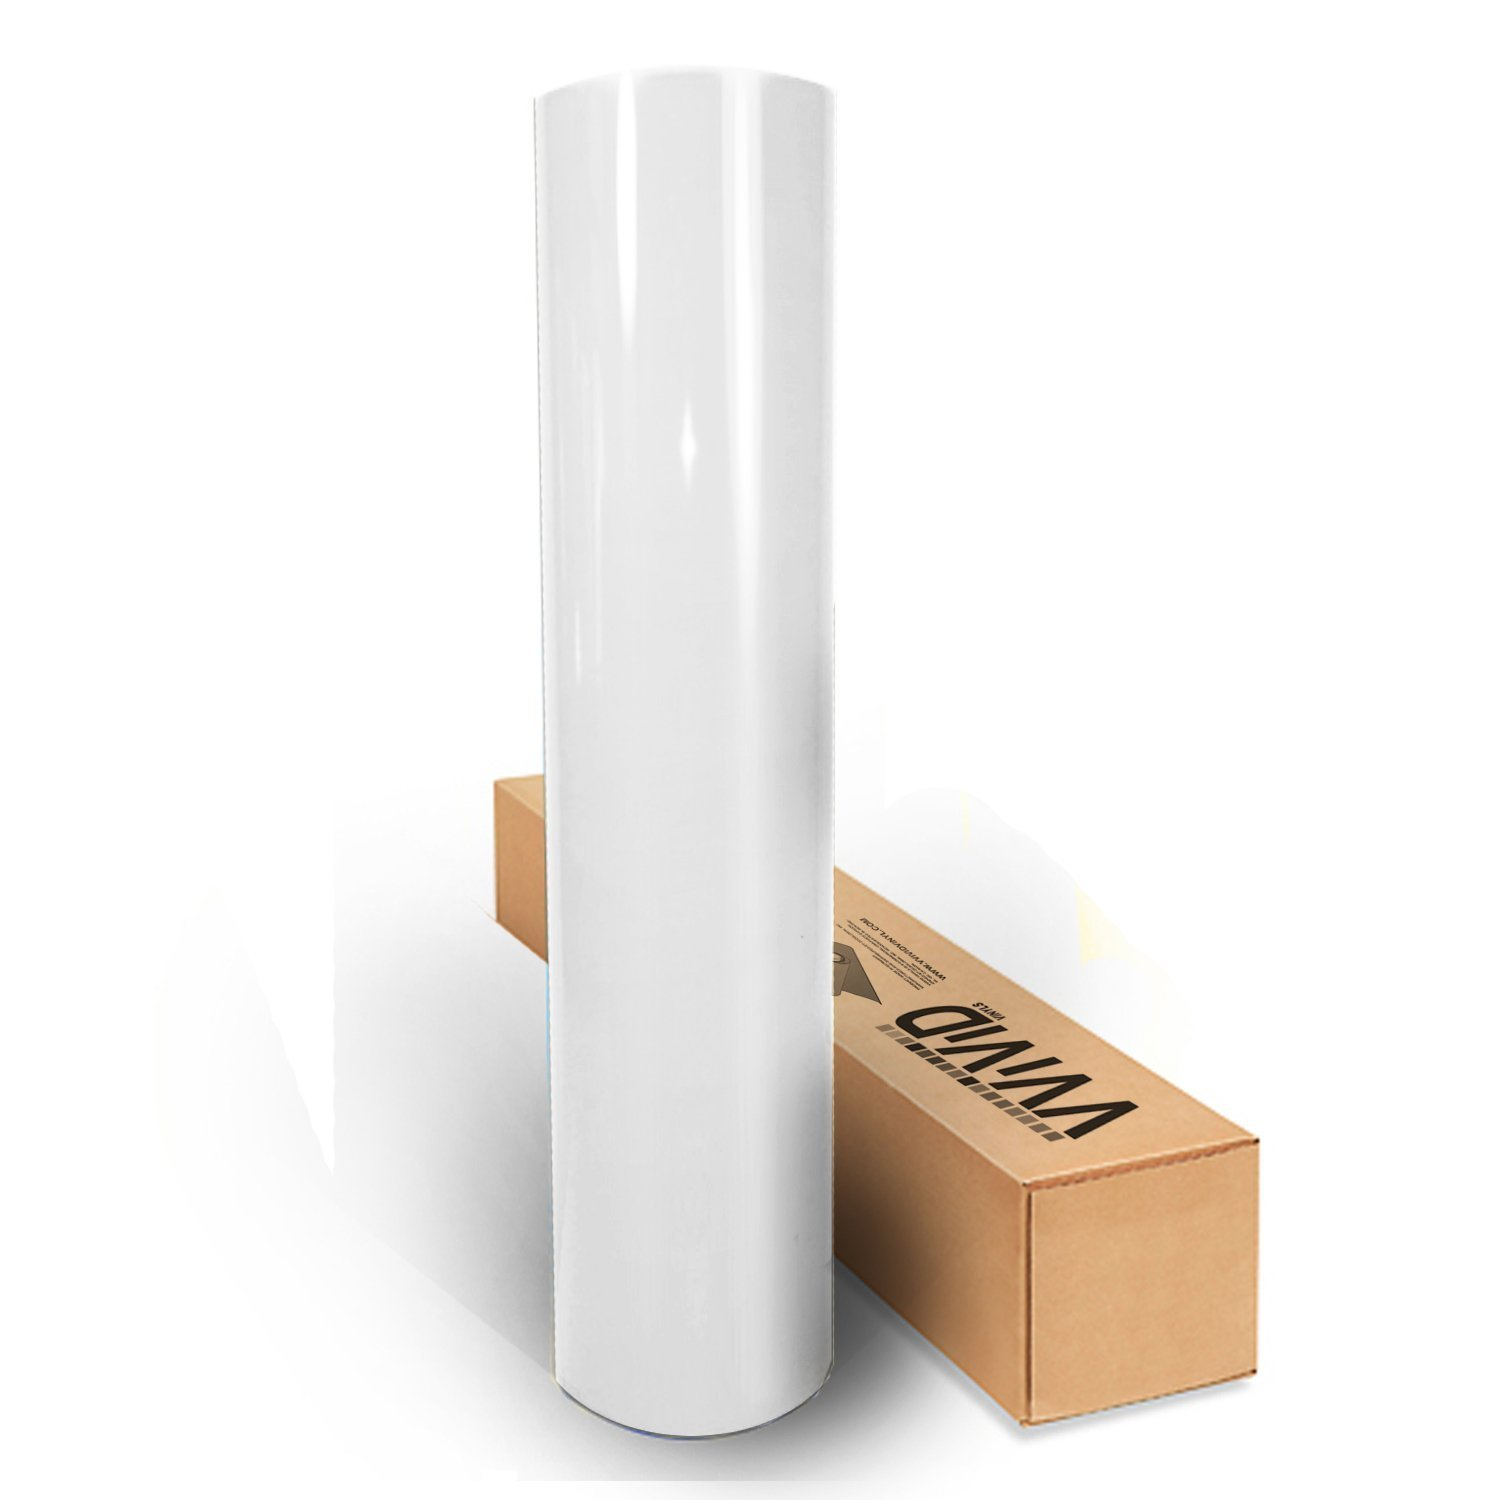 White High Gloss Realistic Paint-Like Microfinish Vinyl Wrap Roll With VViViD XPO Air Release Technology - 1ft x 5ft